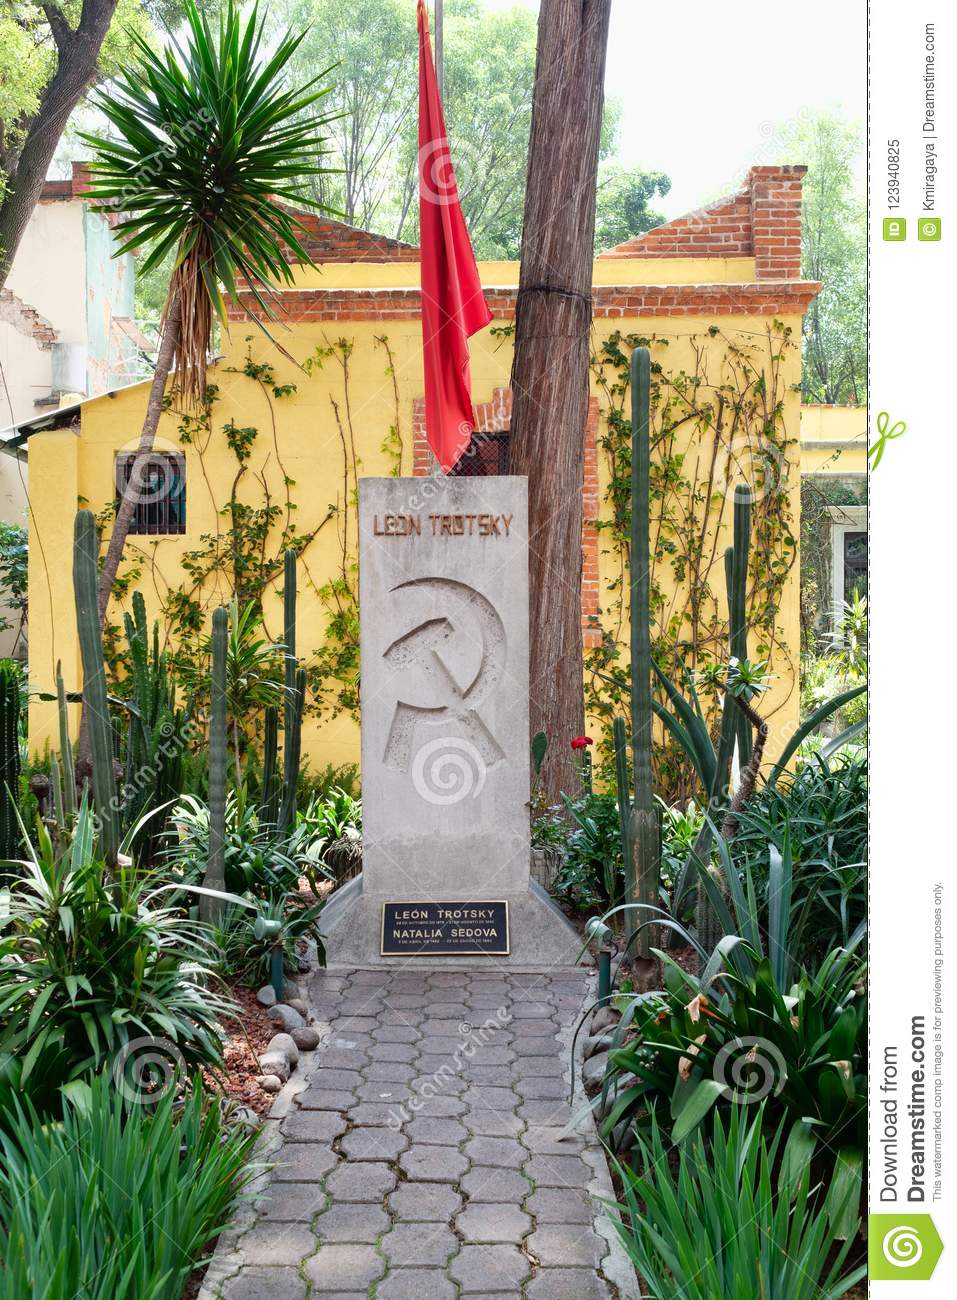 The grave of Leon Trotsky at the house where he lived in Coyoacan, Mexico City